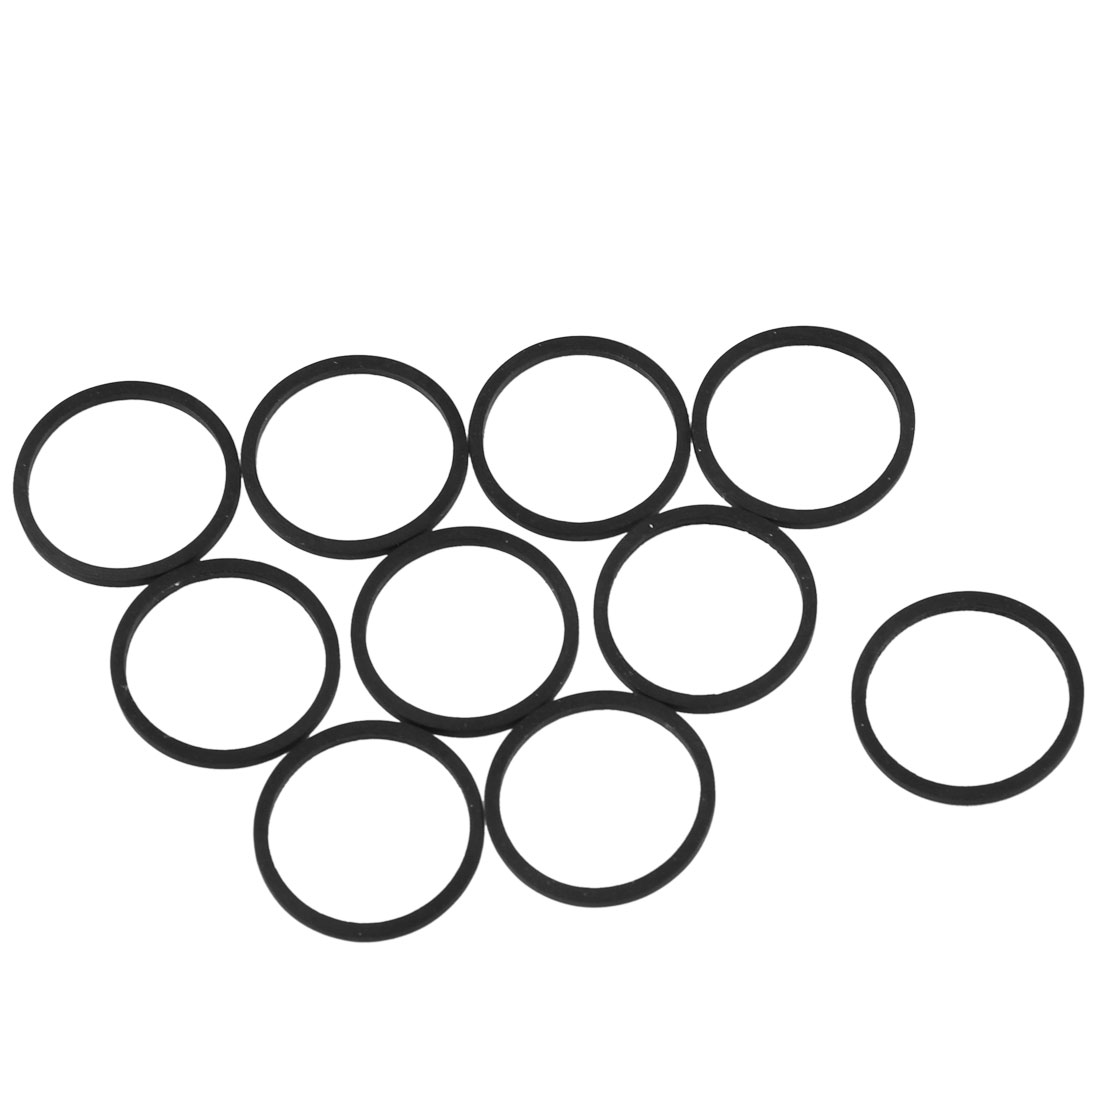 Miniature Motor 50mm Inner Girth Elastic Drive Belt Band Black 10 Pcs